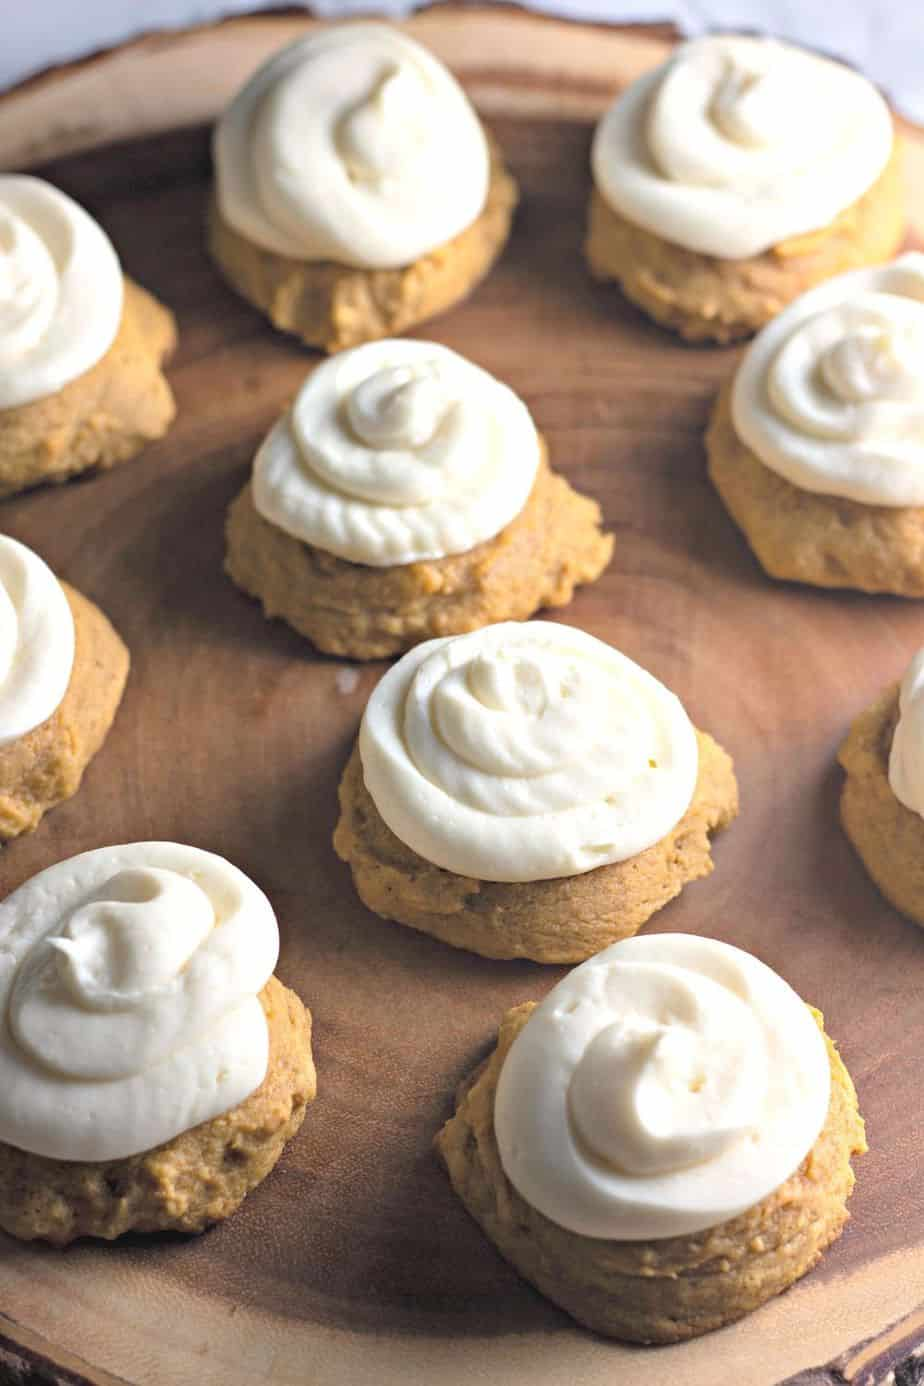 These Bakery Style Soft Pumpkin Cookies are soft and mildly sweet with just the right amount of pumpkin spice. The cream cheese icing is the perfect topping make this pumpkin cookie recipe a perfect fall treat. #pumpkincookies #pumpkinrecipe #falldessert #cookierecipe